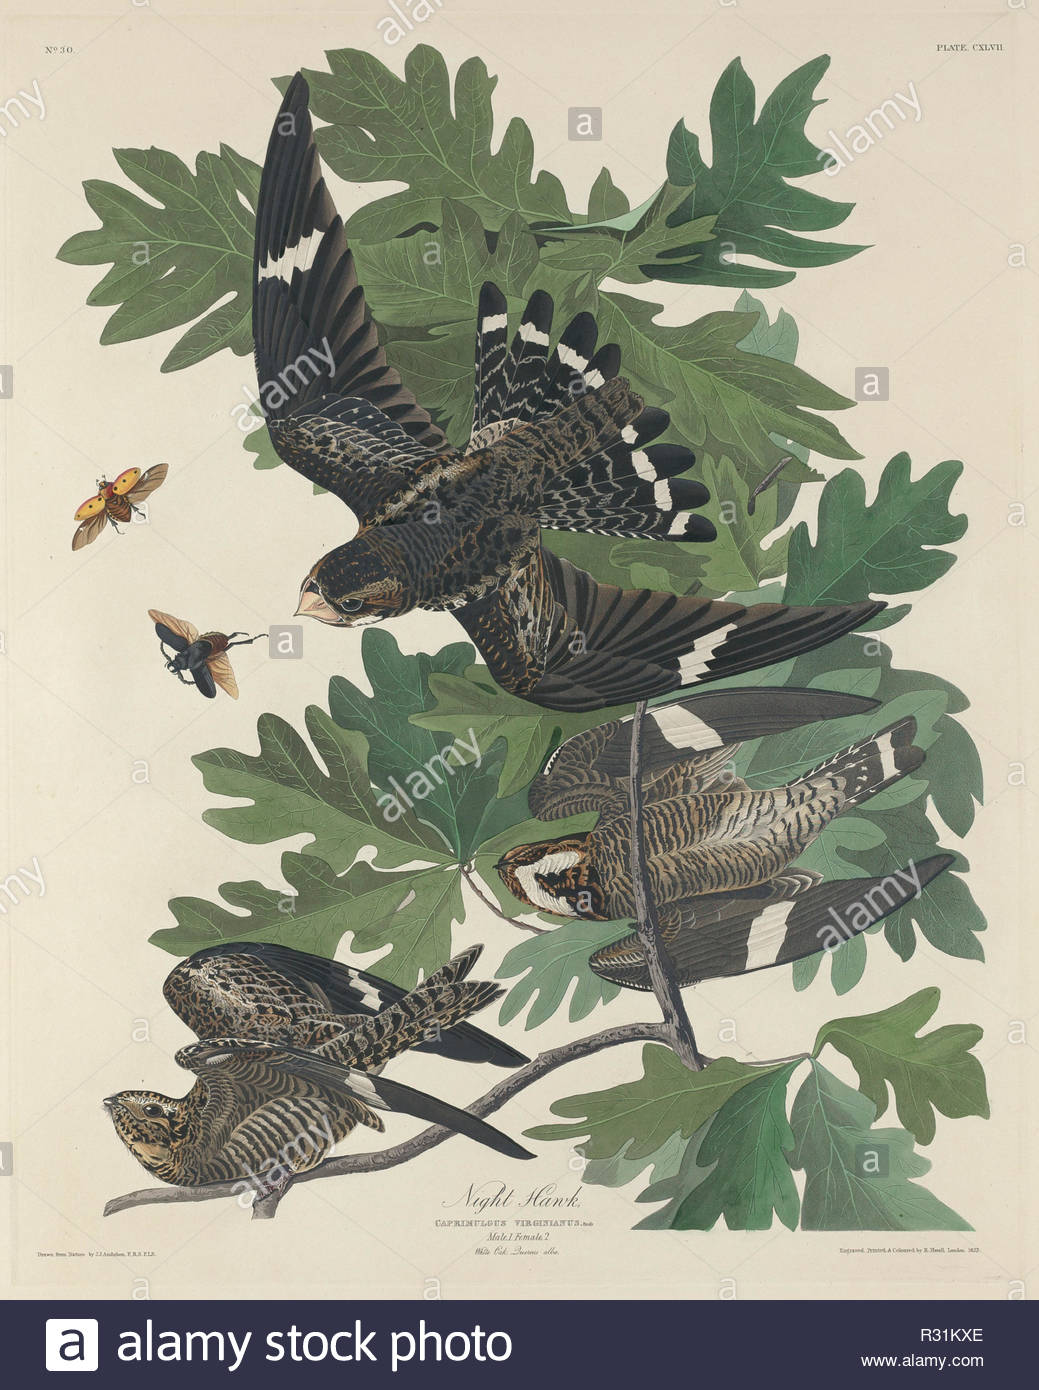 Night Hawk. Stand: 1832. Medium: Handcolorierte Radierung und Aquatinta auf Whatman Papier. Museum: Nationalgalerie, Washington DC. Autor: Robert Havell nach John James Audubon. Stockbild